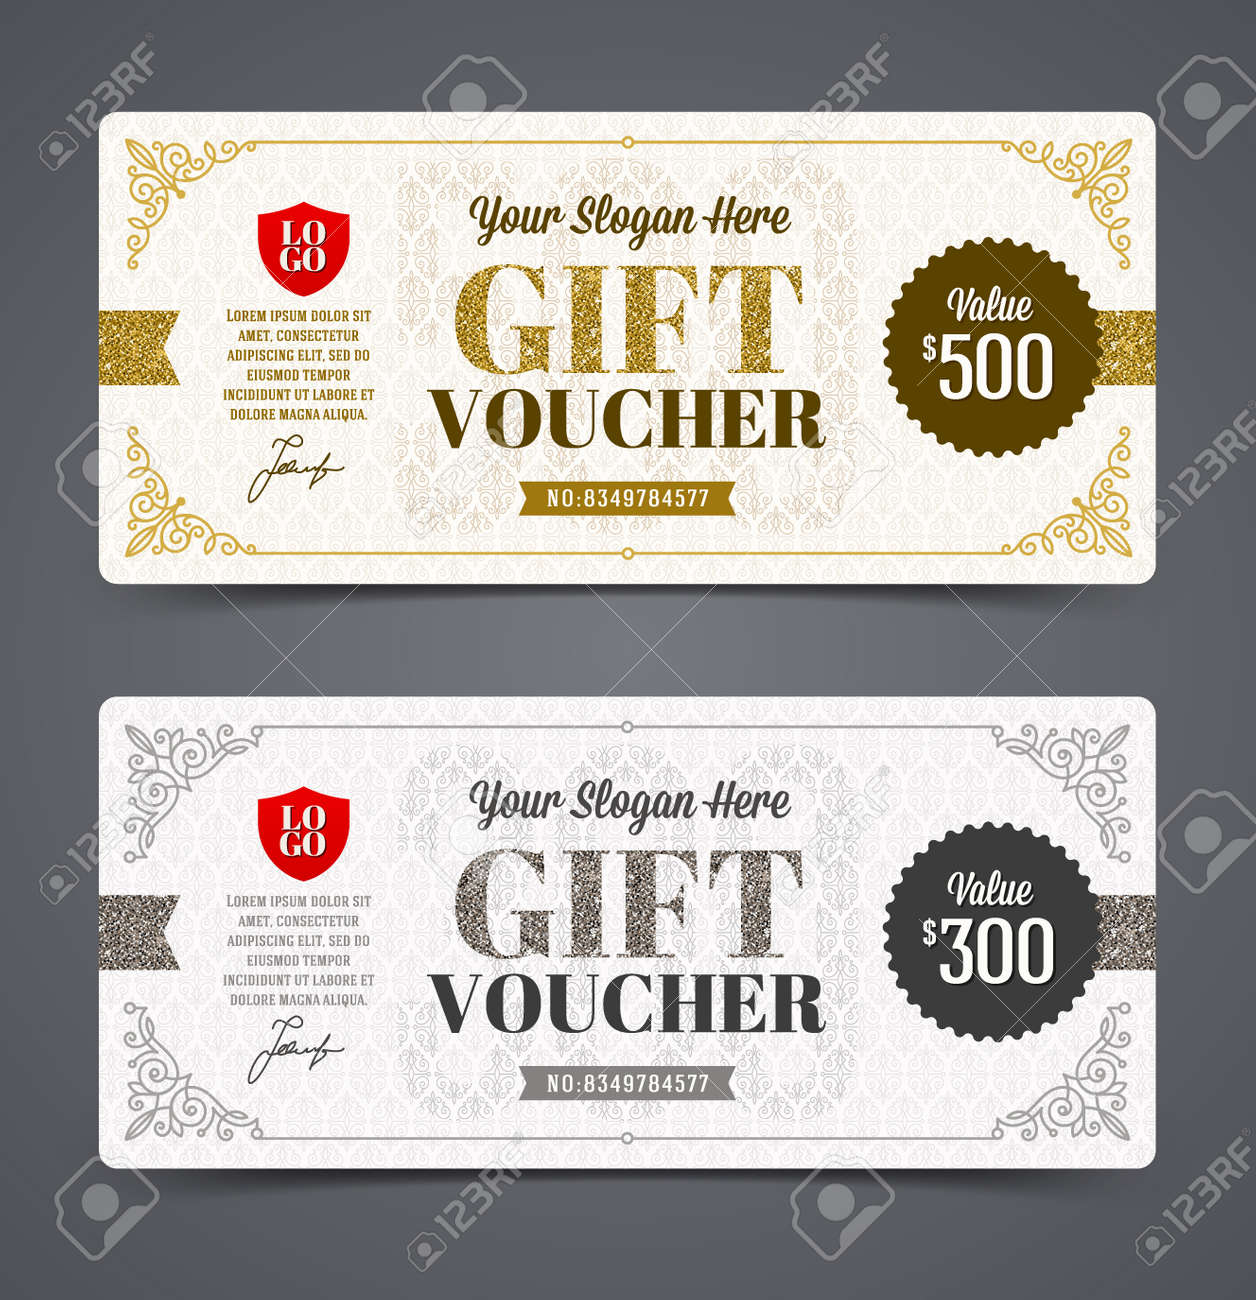 coupons cliparts stock vector and royalty coupons coupons gift voucher template glitter gold and silver vector illustration design for